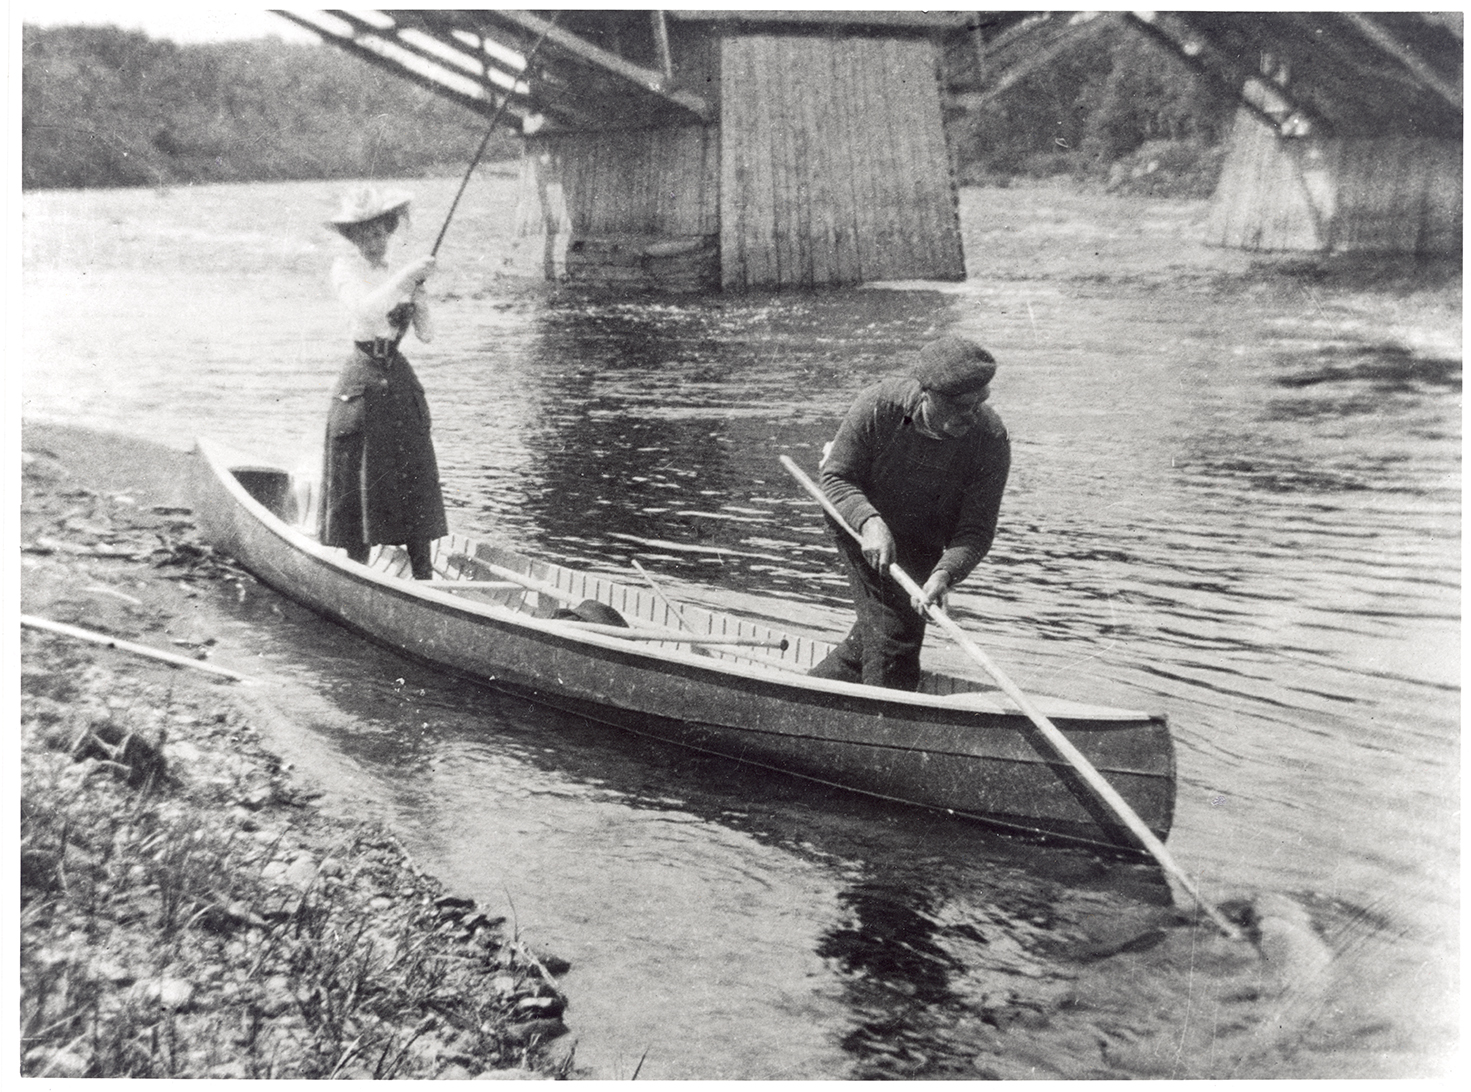 Silver print showing Elsie Reford standing in a canoe at the river's edge. She is wearing a mid-length skirt, a white blouse, and a large elegant hat. She appears to be pulling on a large fishing pole. A man at the front of the canoe is lifting a large fish from the river with a long pole and hook.